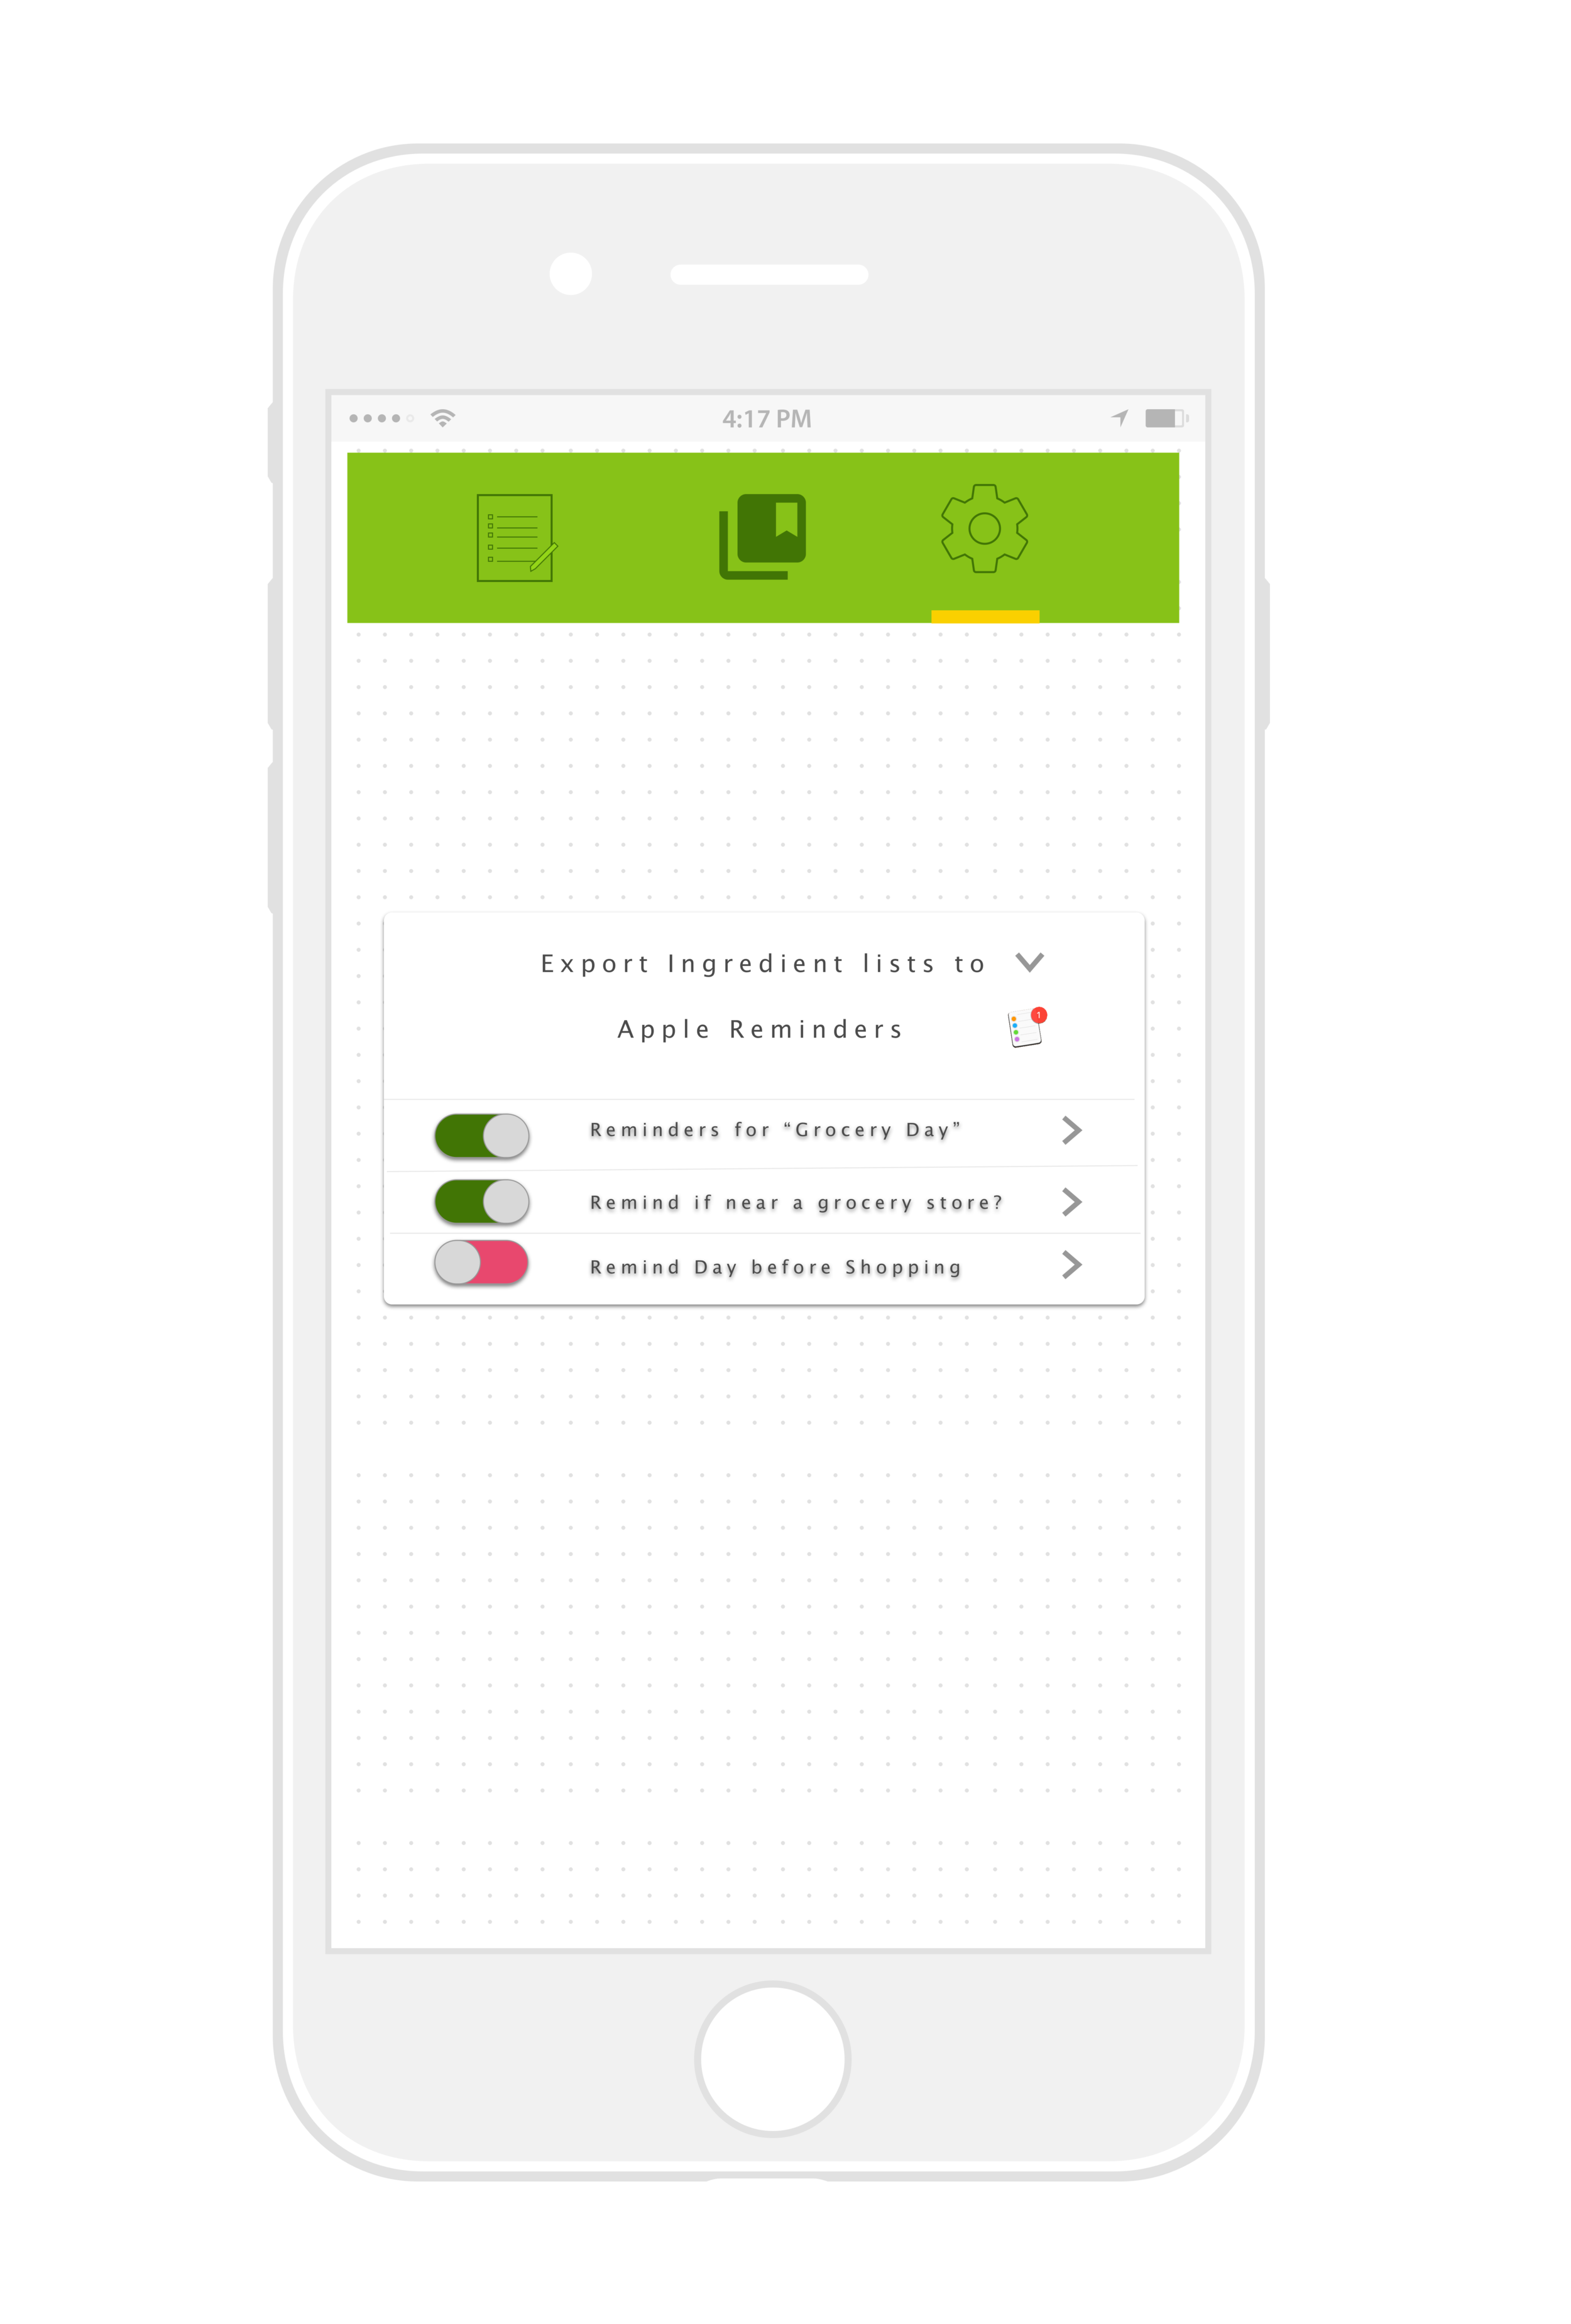 """5 On the Recipeas setting screen, the user can select which app is used for Recipeas shopping list exports.  Reminders for a weekly grocery shopping day, as well as """"Day Before"""" and location based reminders can also be toggled."""